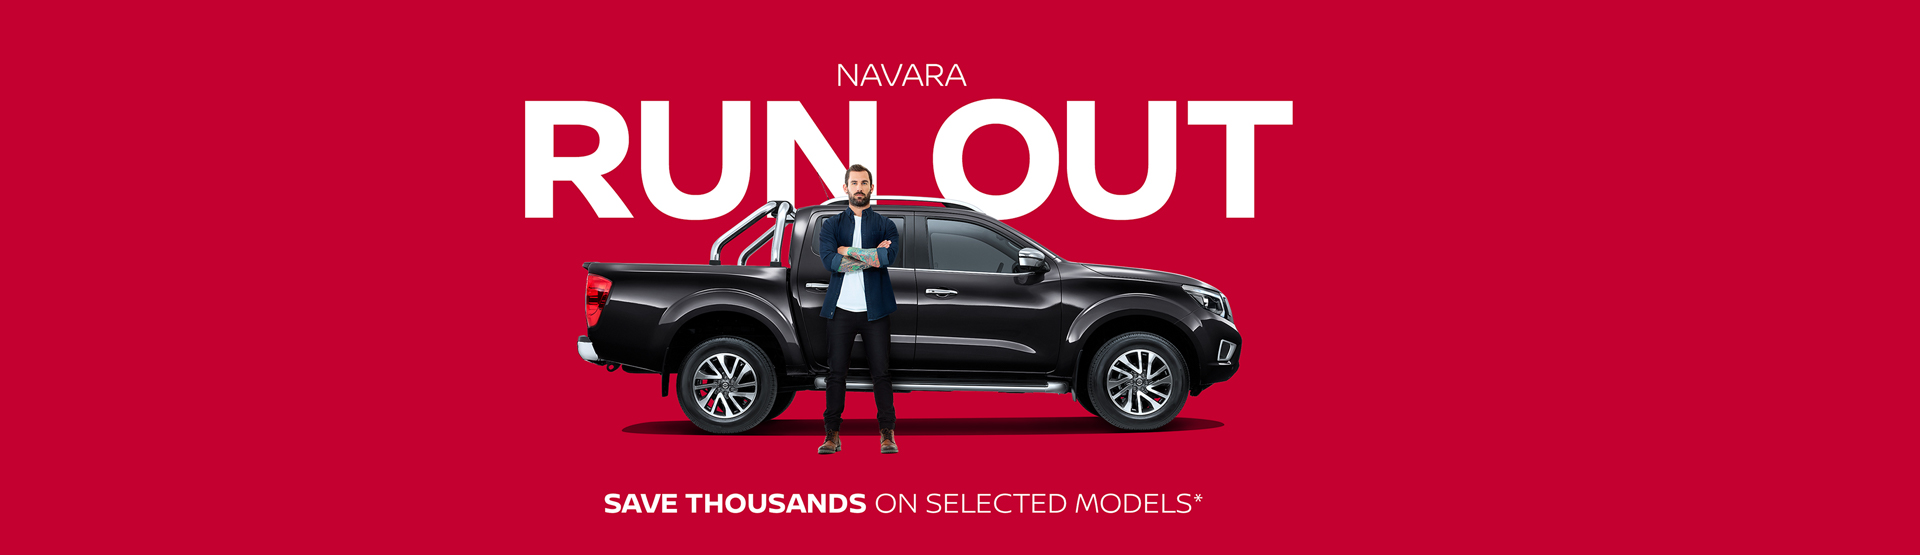 Ferntree Gully Nissan - Navara Run Out Sale!